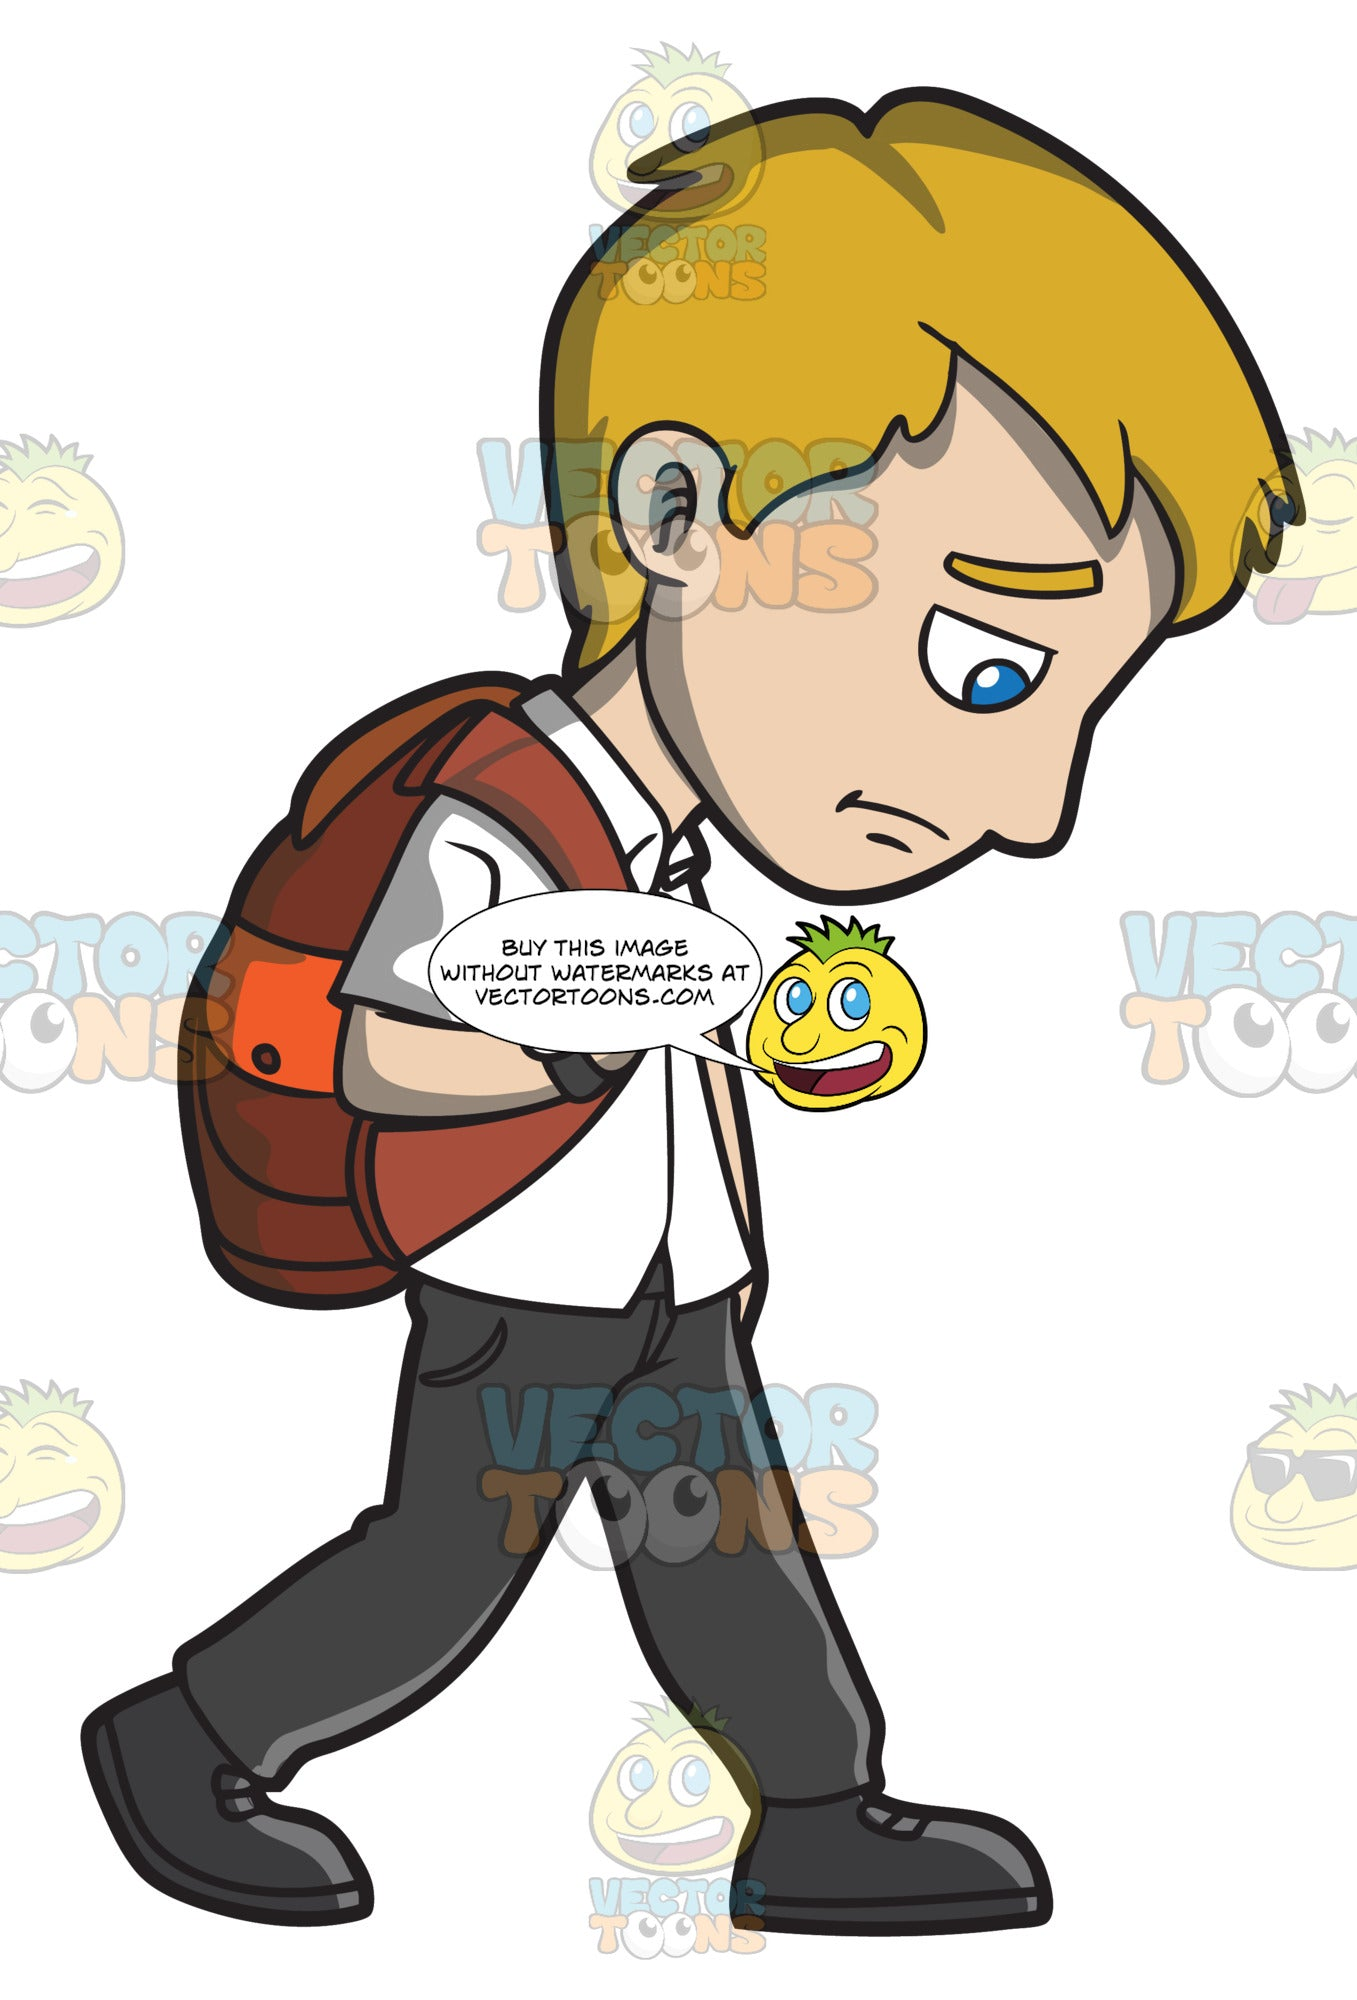 A sad young man walking home from work clipart cartoons by vectortoons